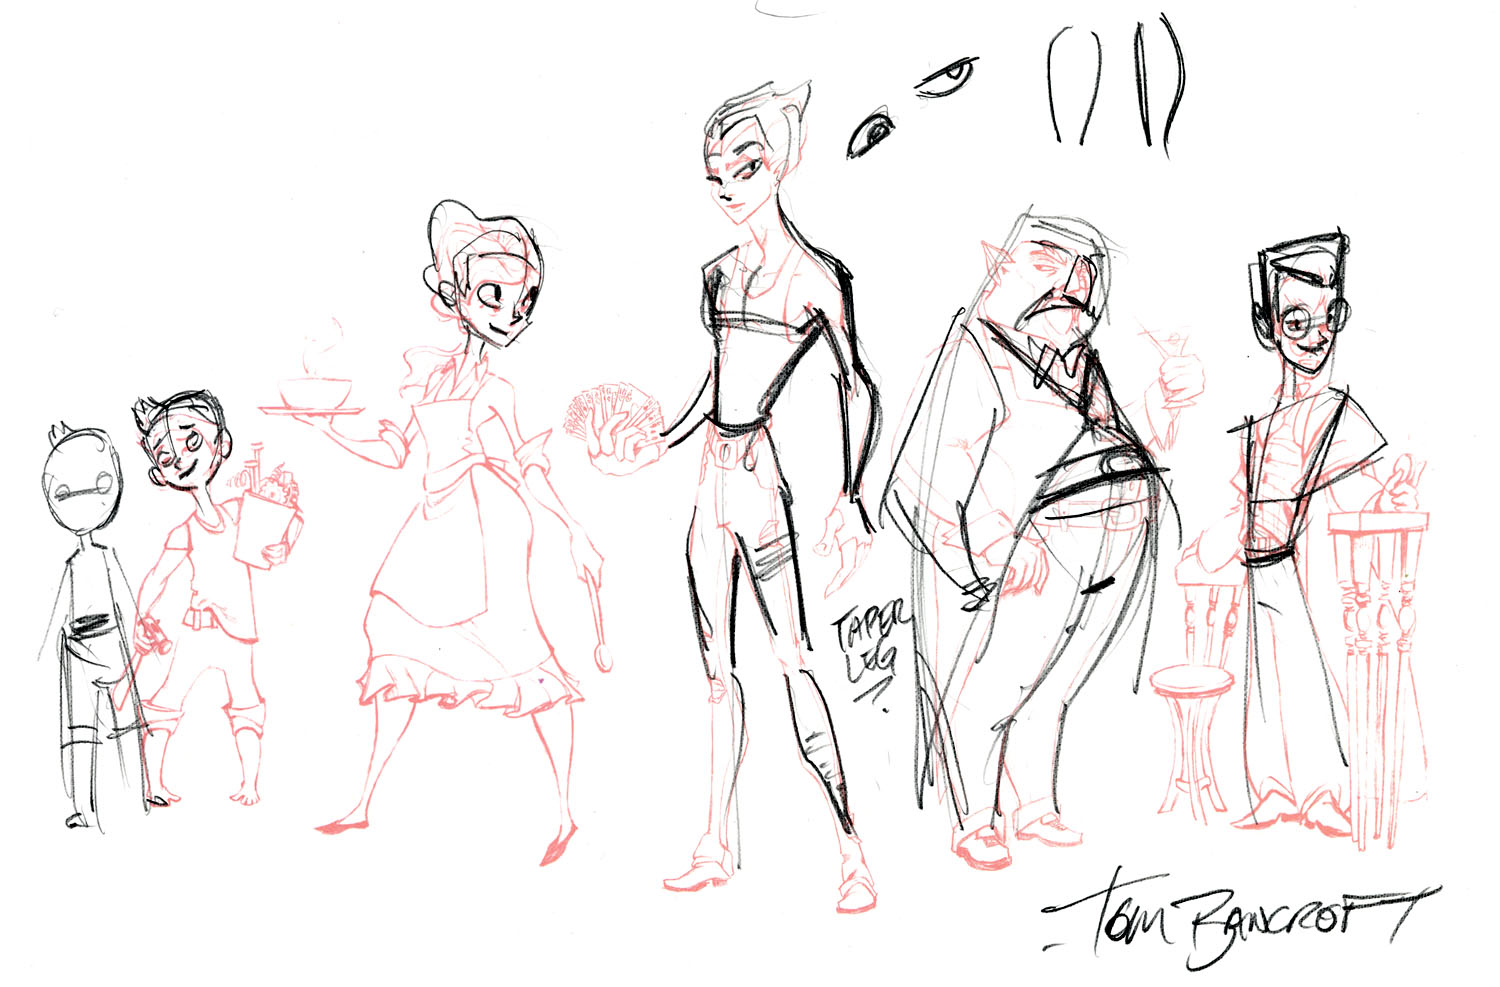 Character Design Proportions : Pushing character designs scott wiser ★ animator